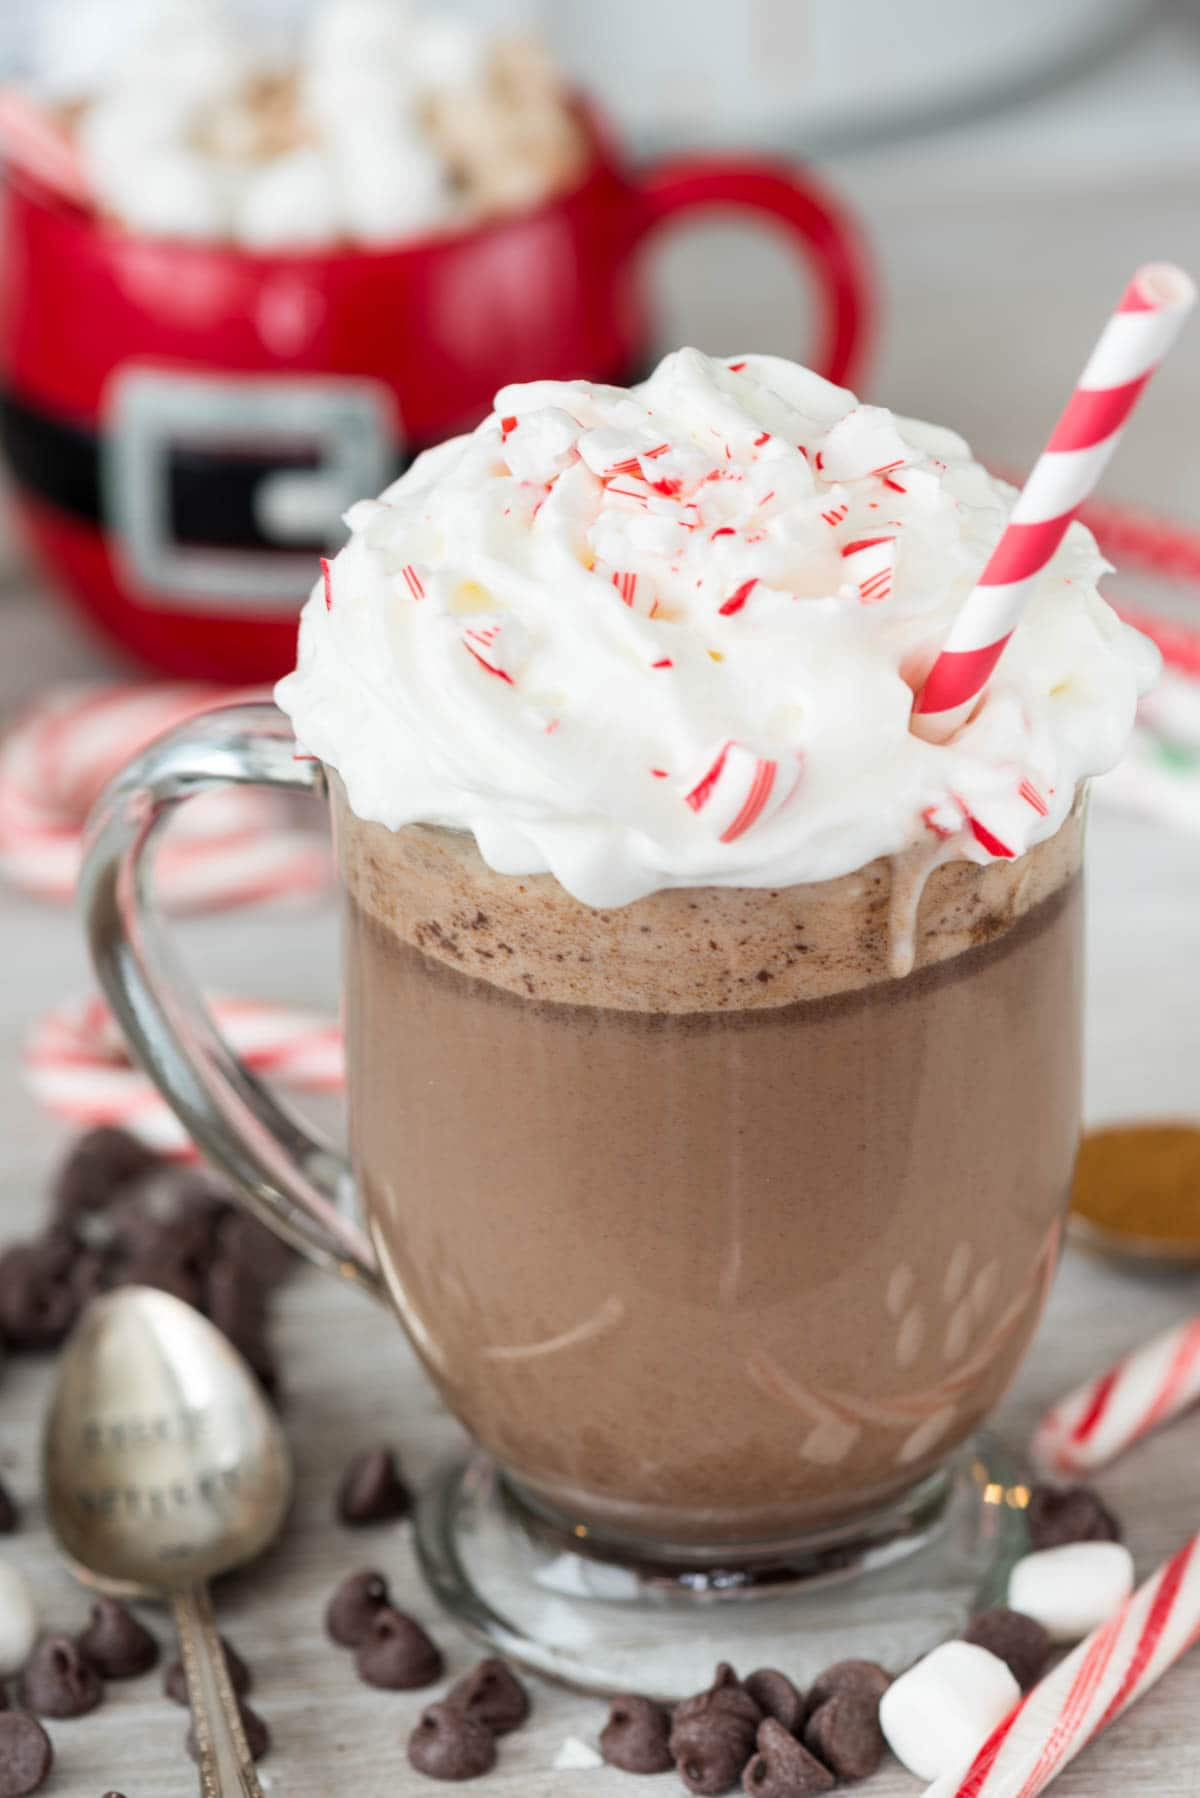 Slow Cooker Peppermint Mocha Snuggler - this easy crockpot hot chocolate recipe is filled with peppermint flavor! Keep it plain for kids or make it an adult cocktail with espresso and schnapps!